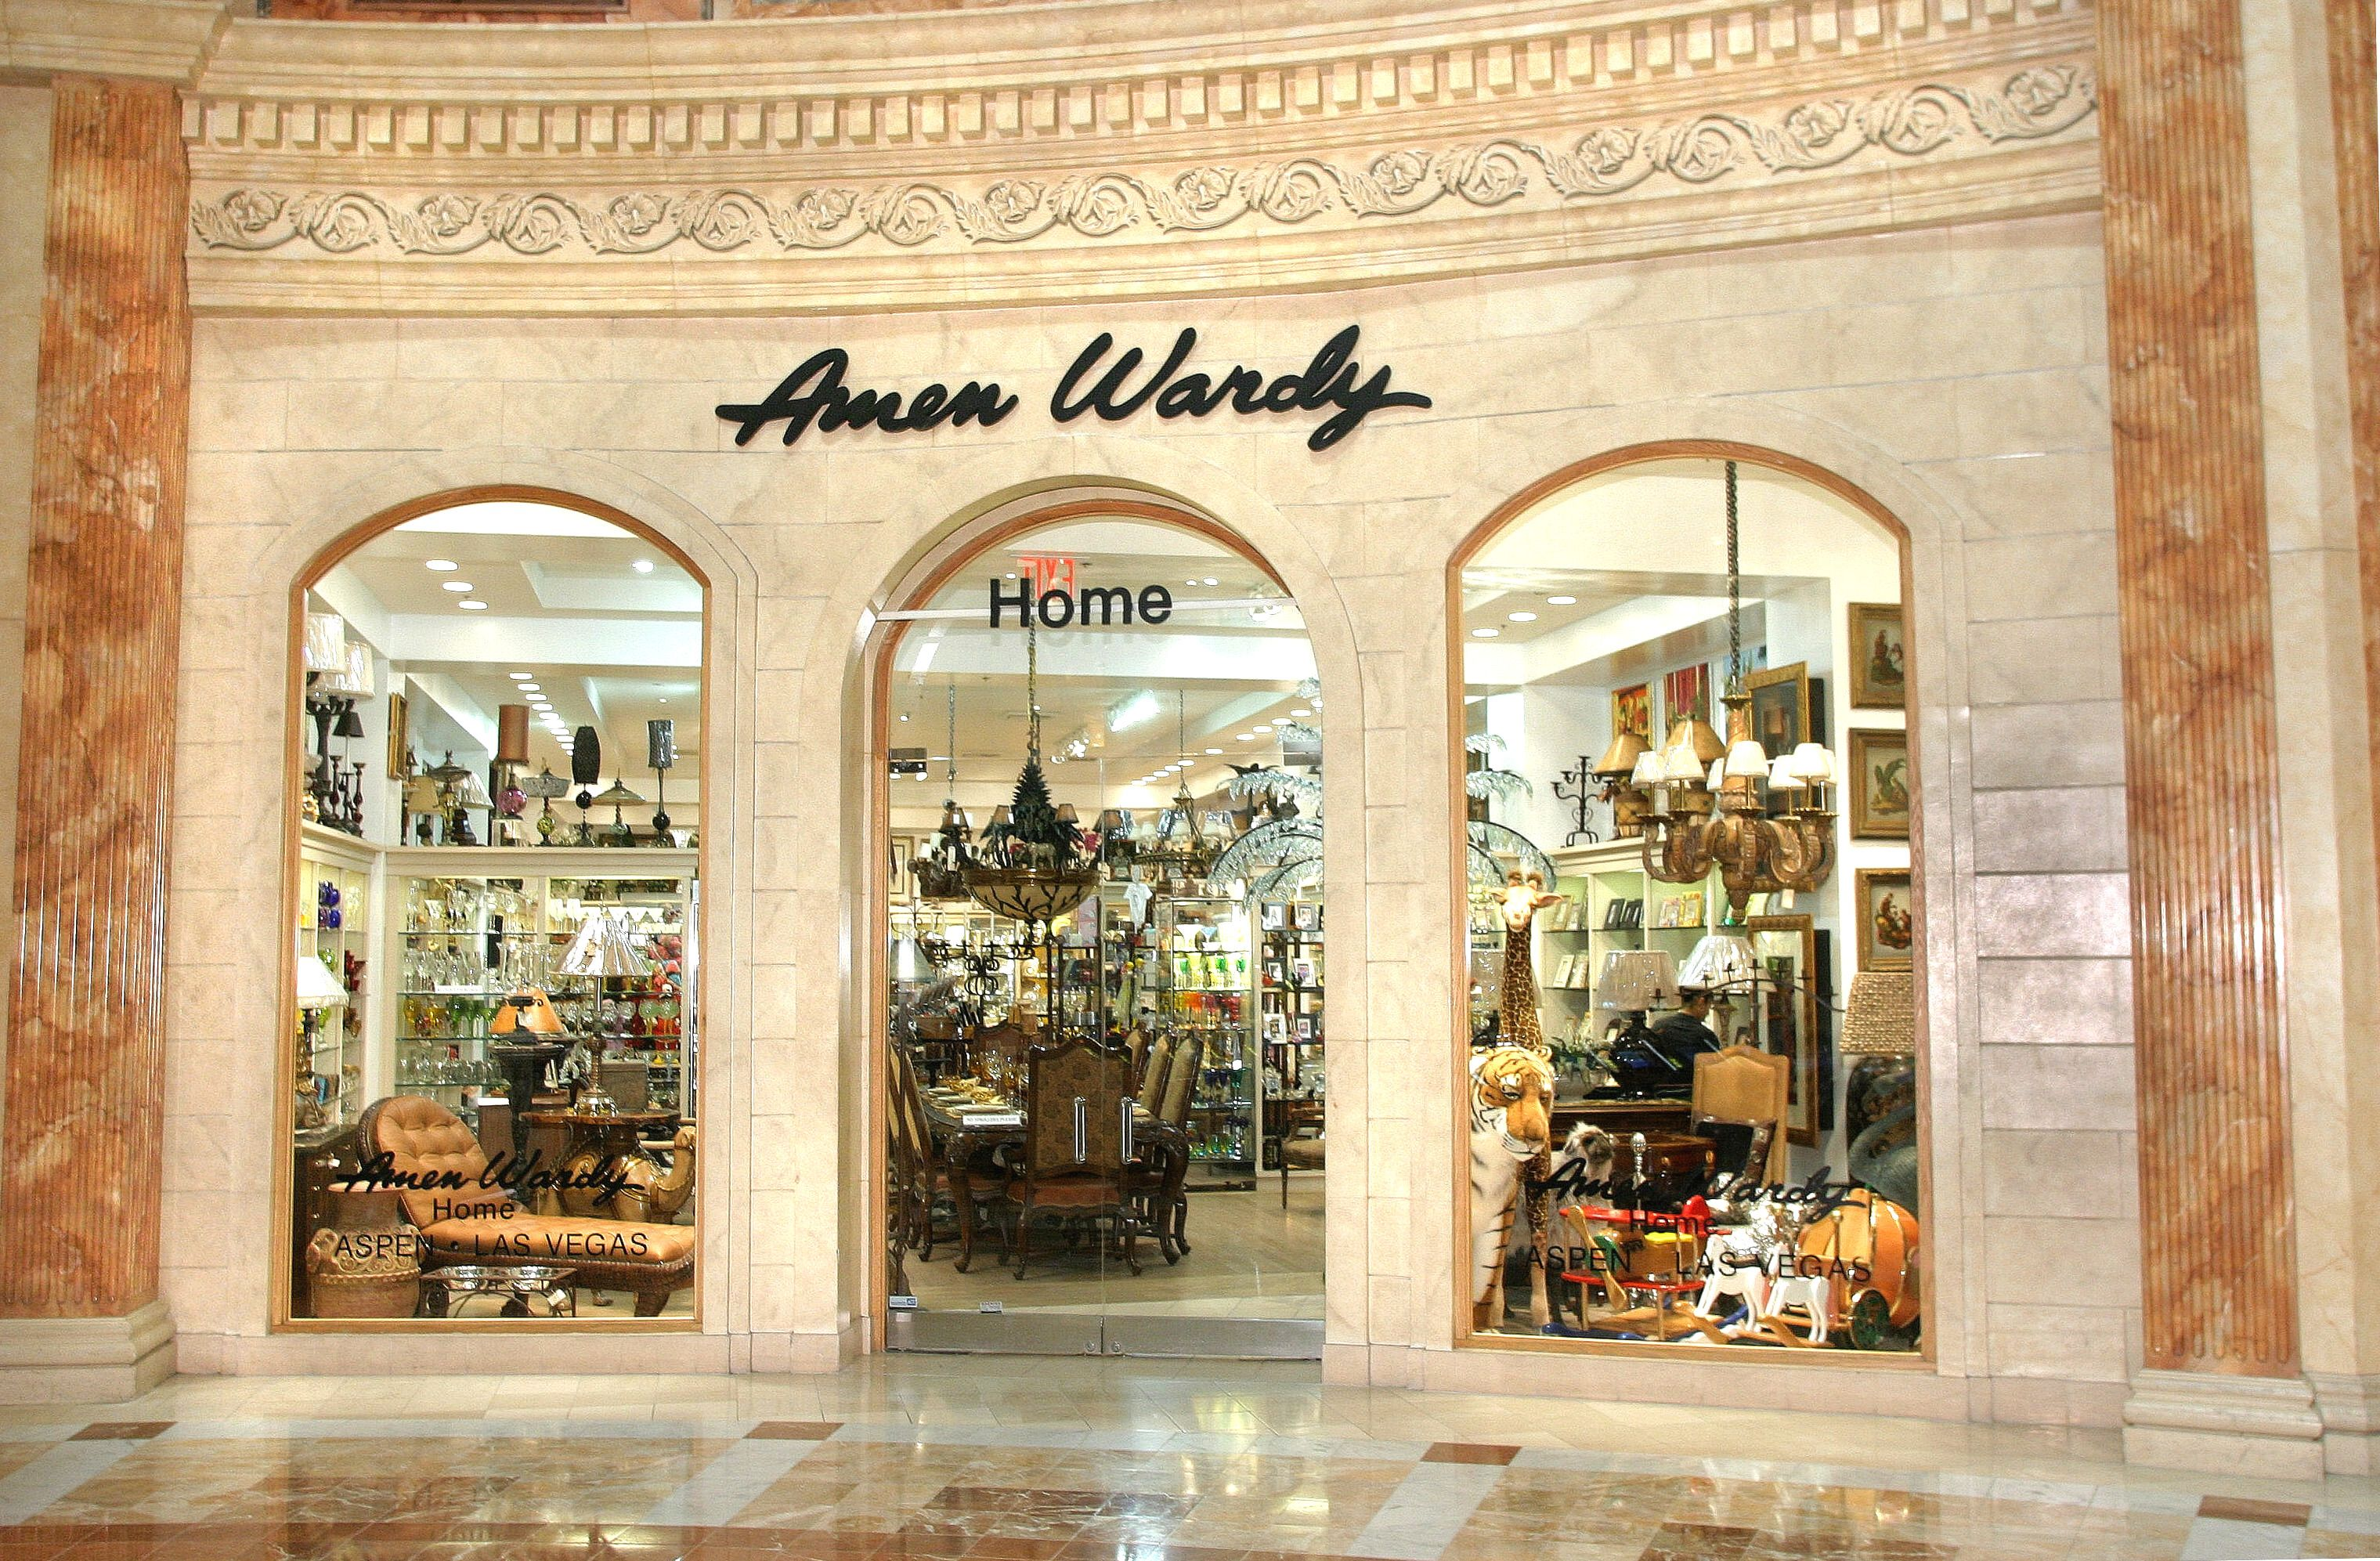 Amen Wardy Aspen amen wardy circa 2004 #theforumshops #amenwardy | 20 years at the